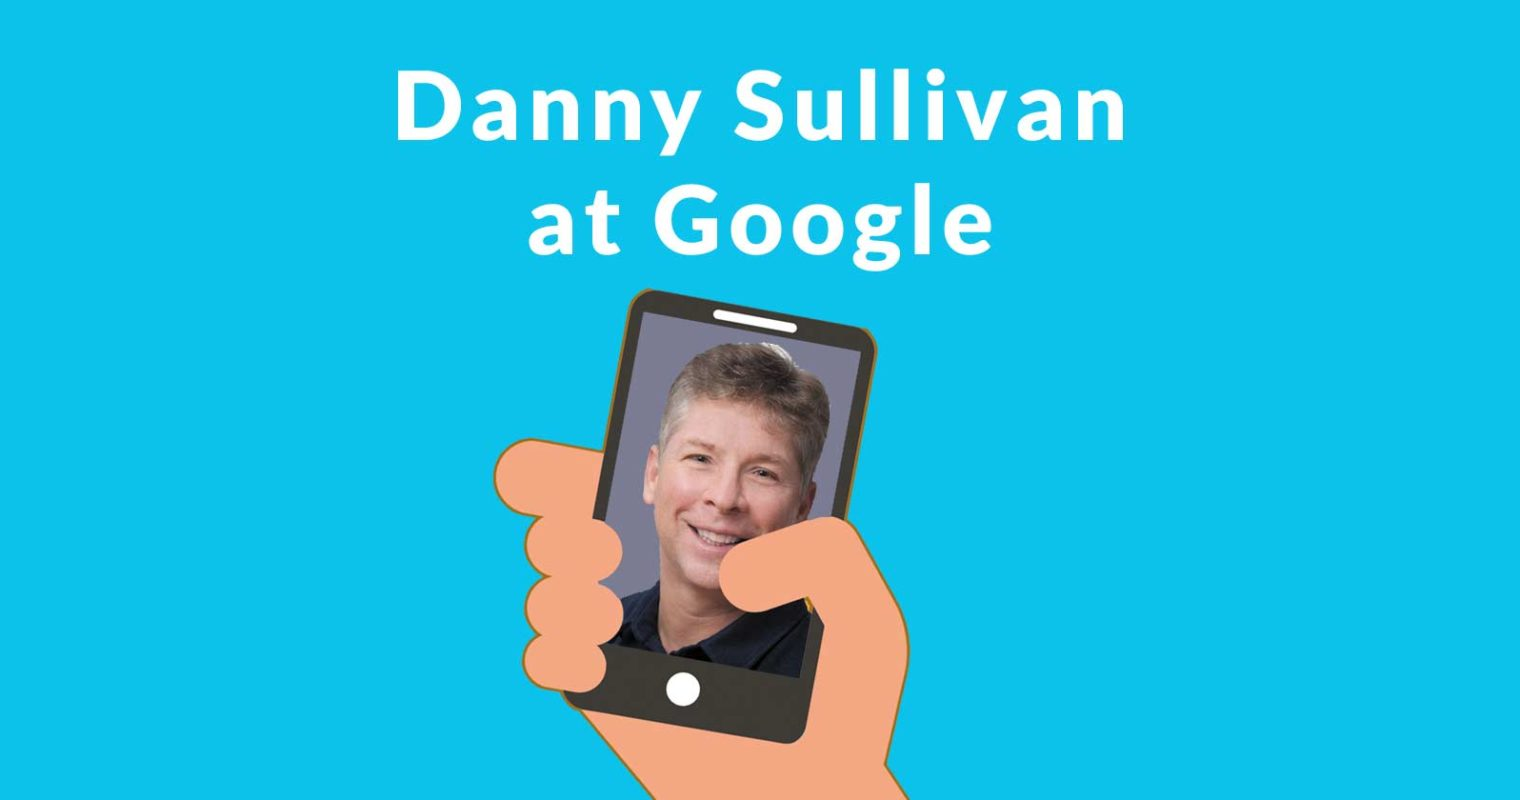 Danny Sullivan Highlights 6 Huge Publisher Fears at Google Ranking Fair